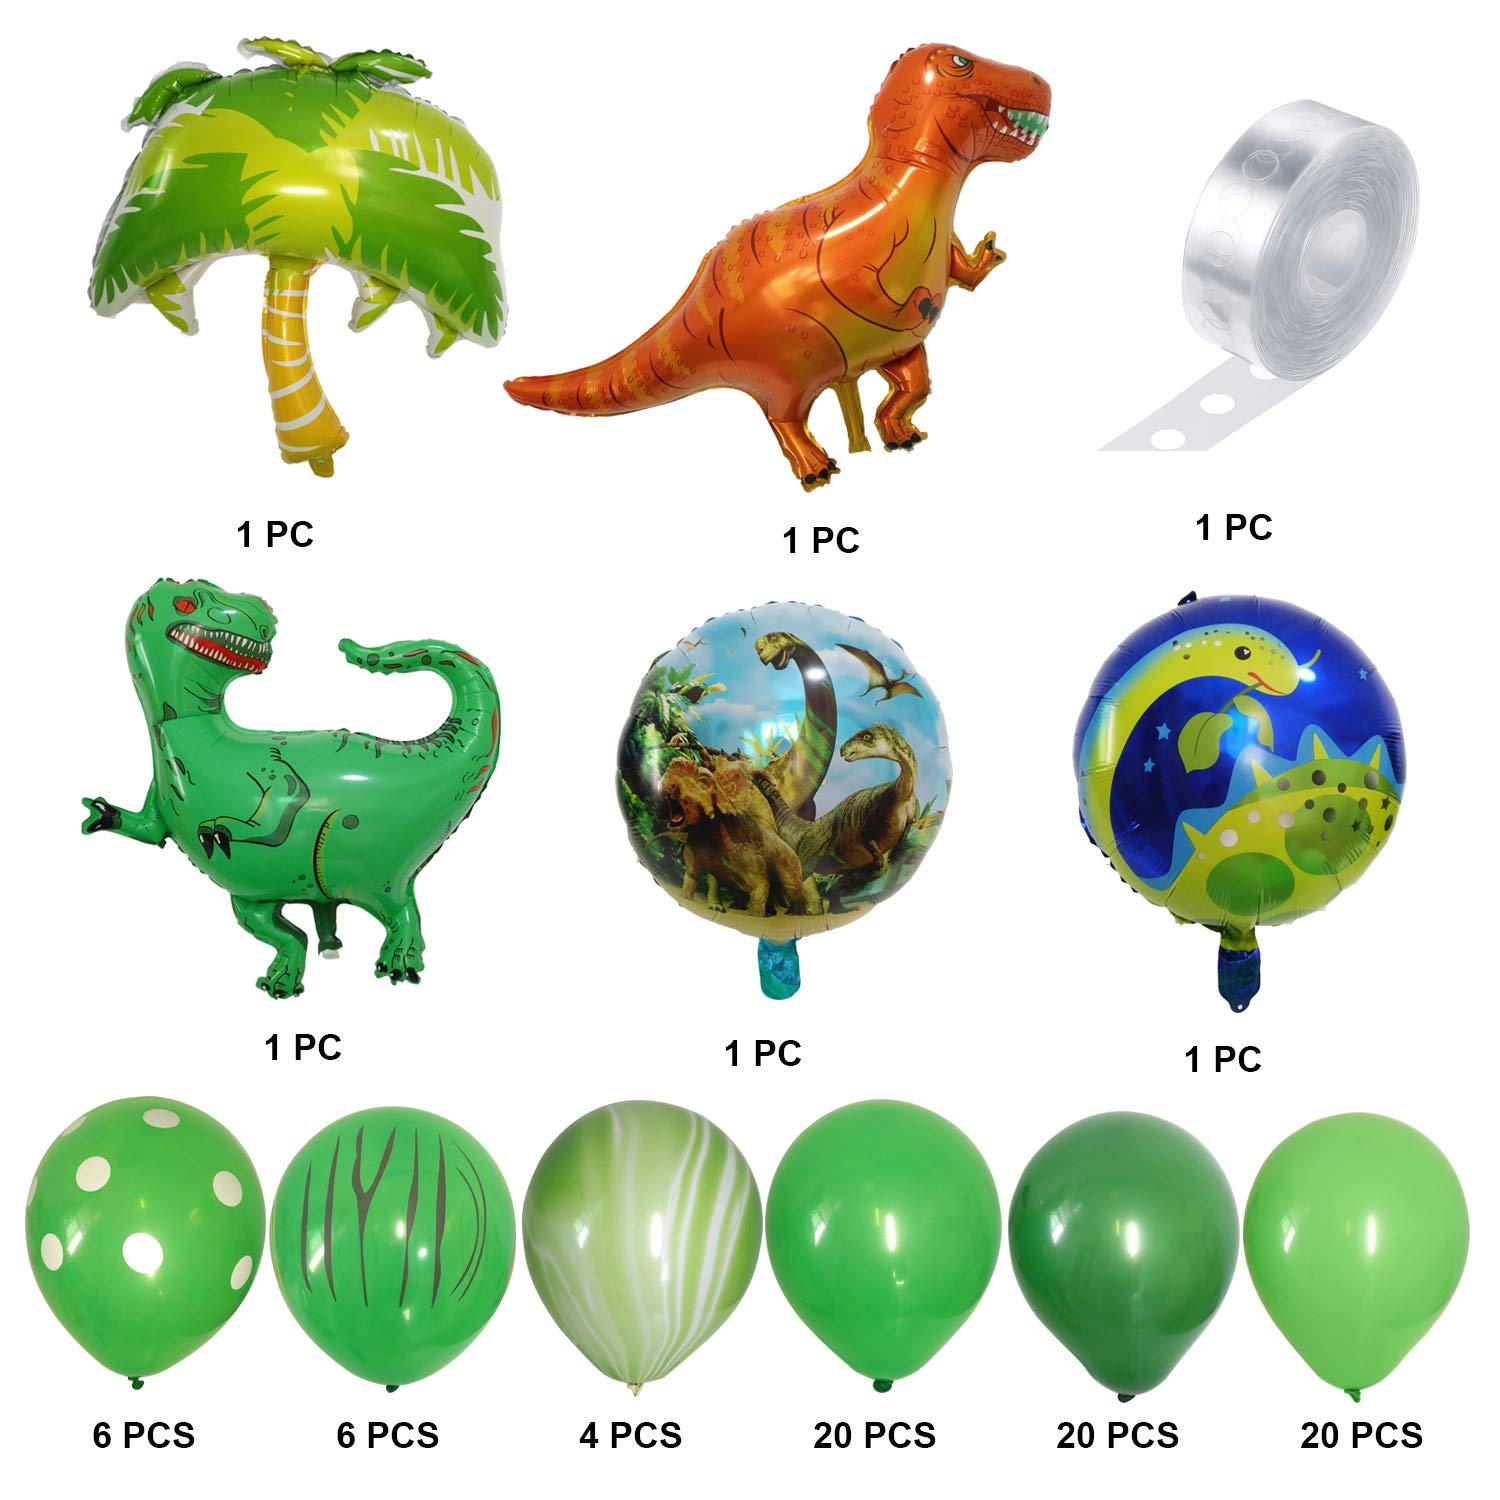 82 PCS Dino Themed Birthday Party Favors Decorations Set for Kids Boy Latex Green Balloons Set with T-Rex Balloons and 16 Feet Balloon Arch Garland Strip JAYKIDS Dinosaur Party Supplies